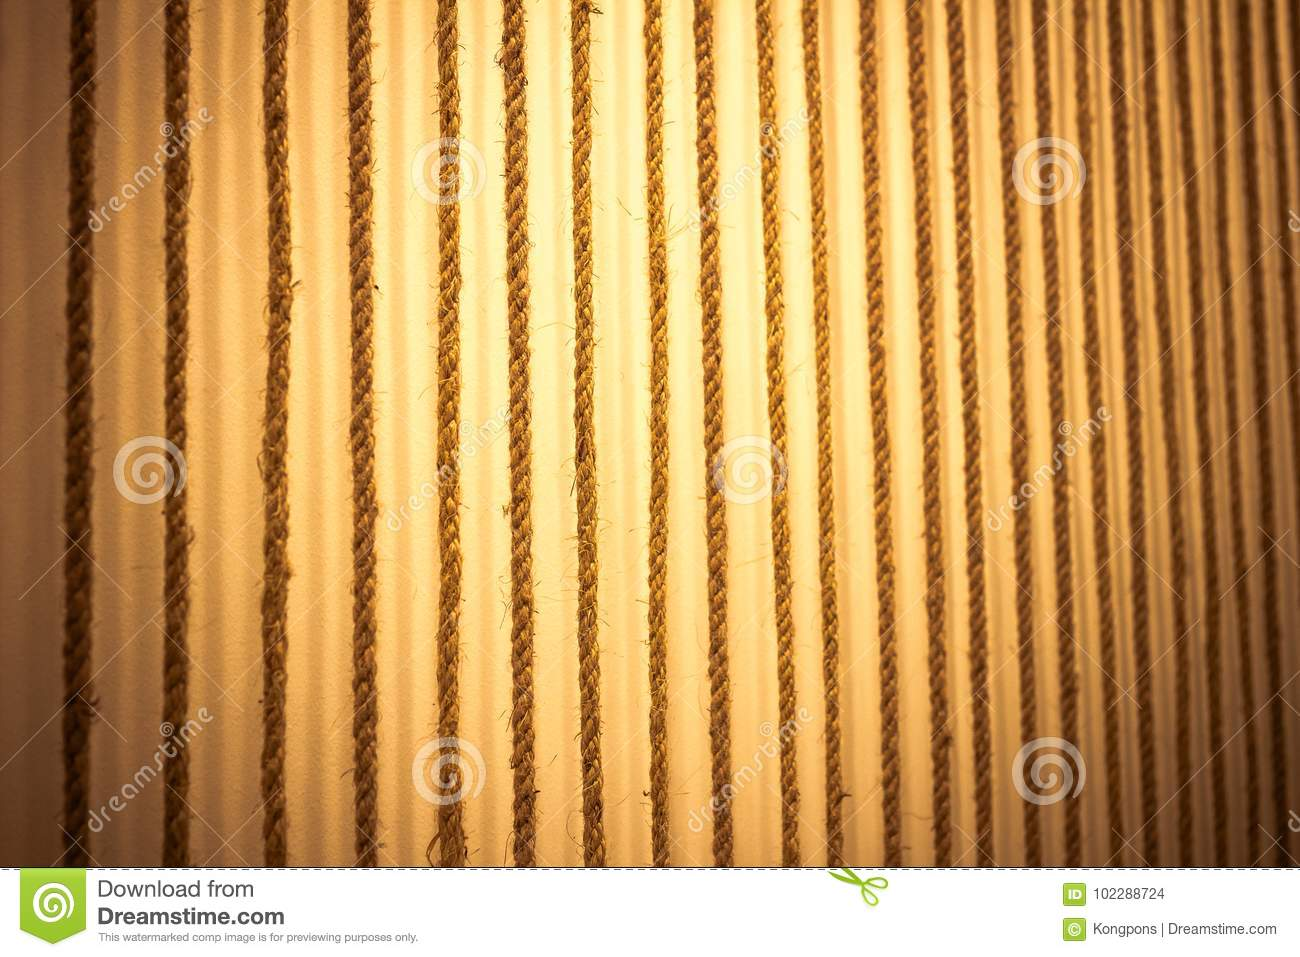 Decorative wall hanging stock photo. Image of room, concept - 102288724